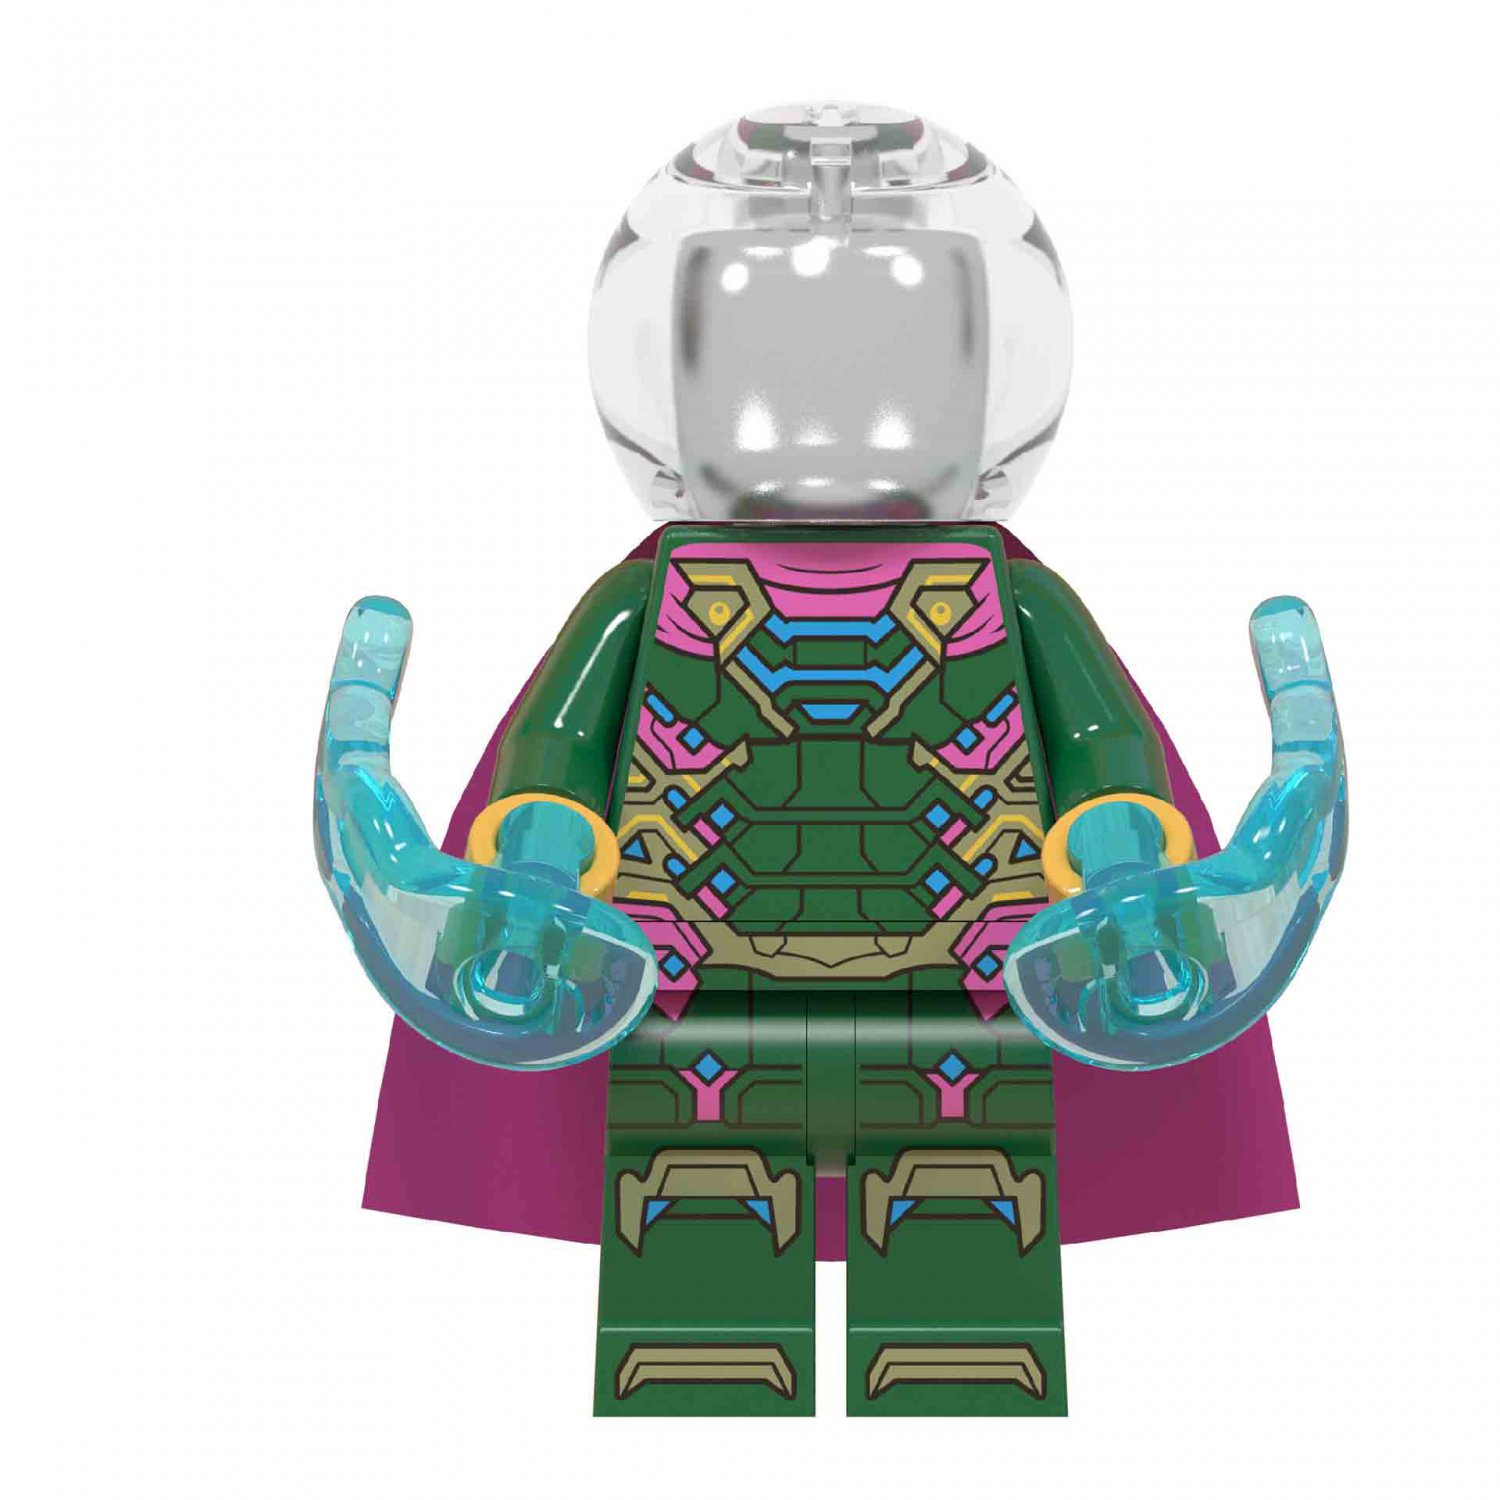 Mysterio Minifigures Lego Compatible Spider-Man Far From Home Toy